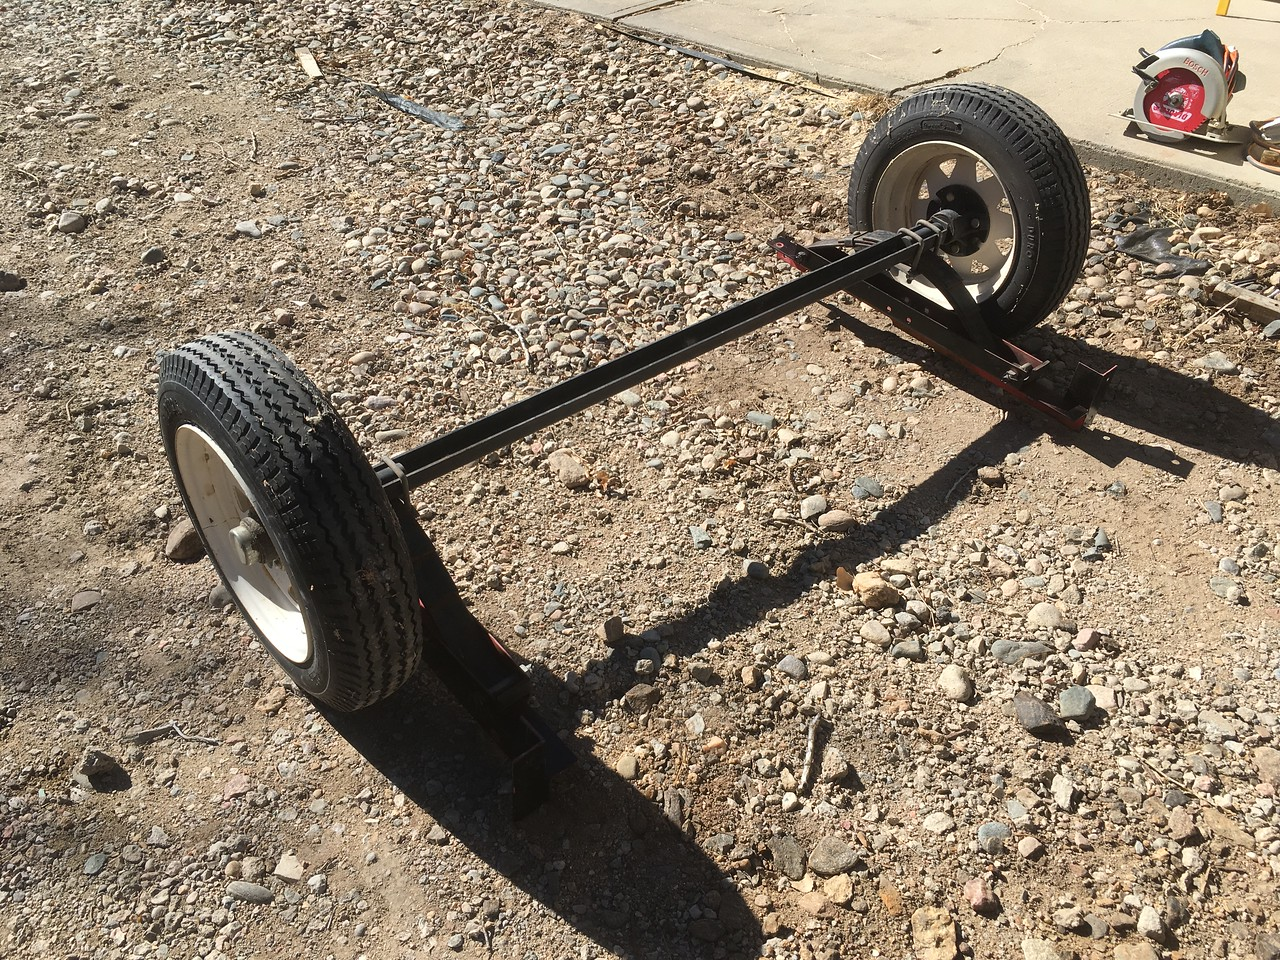 The old harbor freight axle.  Too wimpy for my trailer!